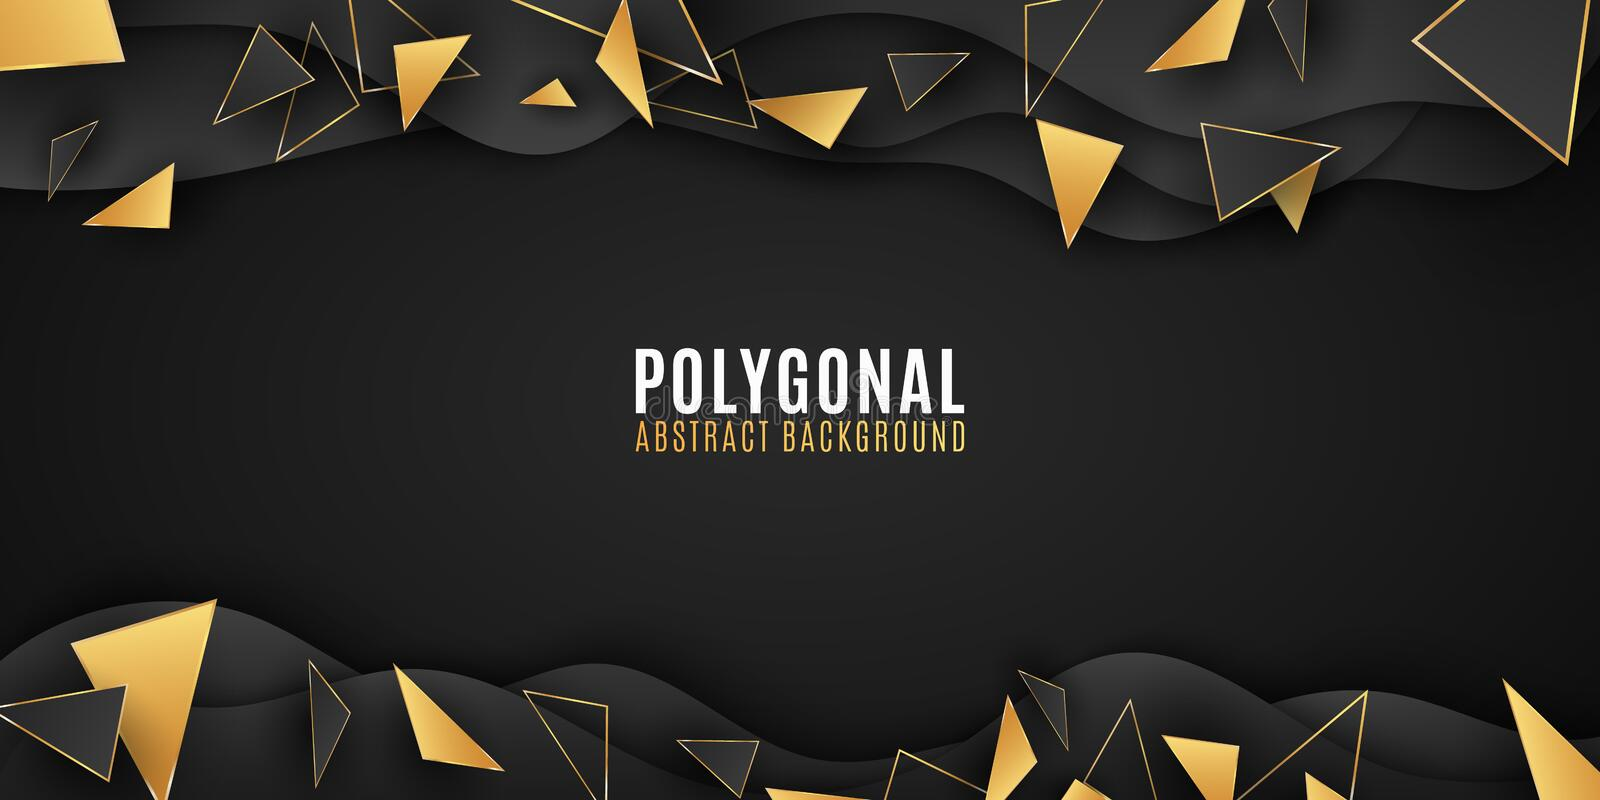 Geometric shapes. Abstract background. Stylish brochure for your design. Paper waves. Low poly style. Black and golden triangles. vector illustration